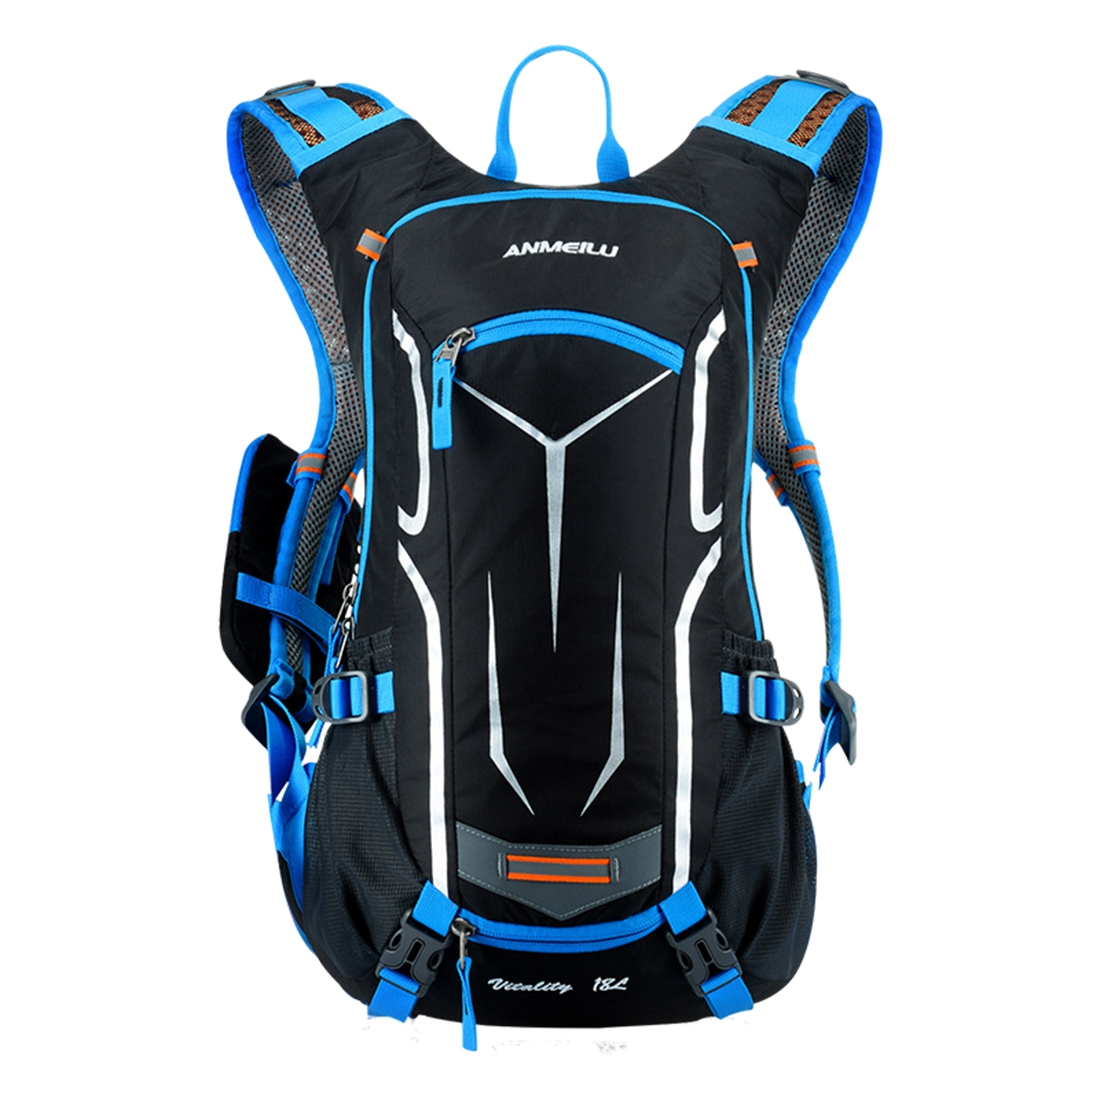 18L men and women  backpack riding  backpack with rain cover18L men and women  backpack riding  backpack with rain cover